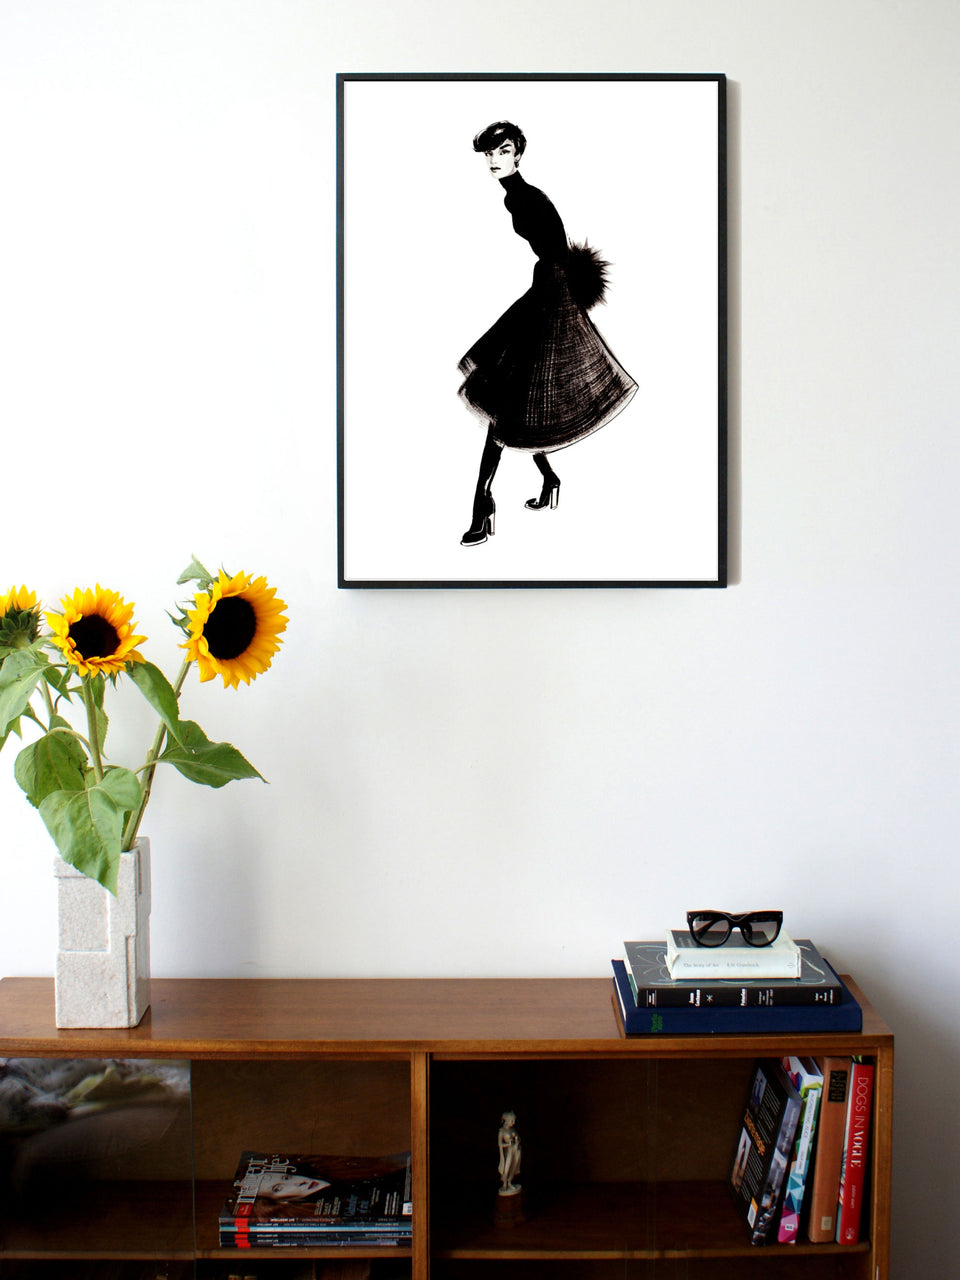 Fashion illustration print of Skirt by Sjoukje Bierma - woman in dark plaid skirt - 60 x 80 cm framed